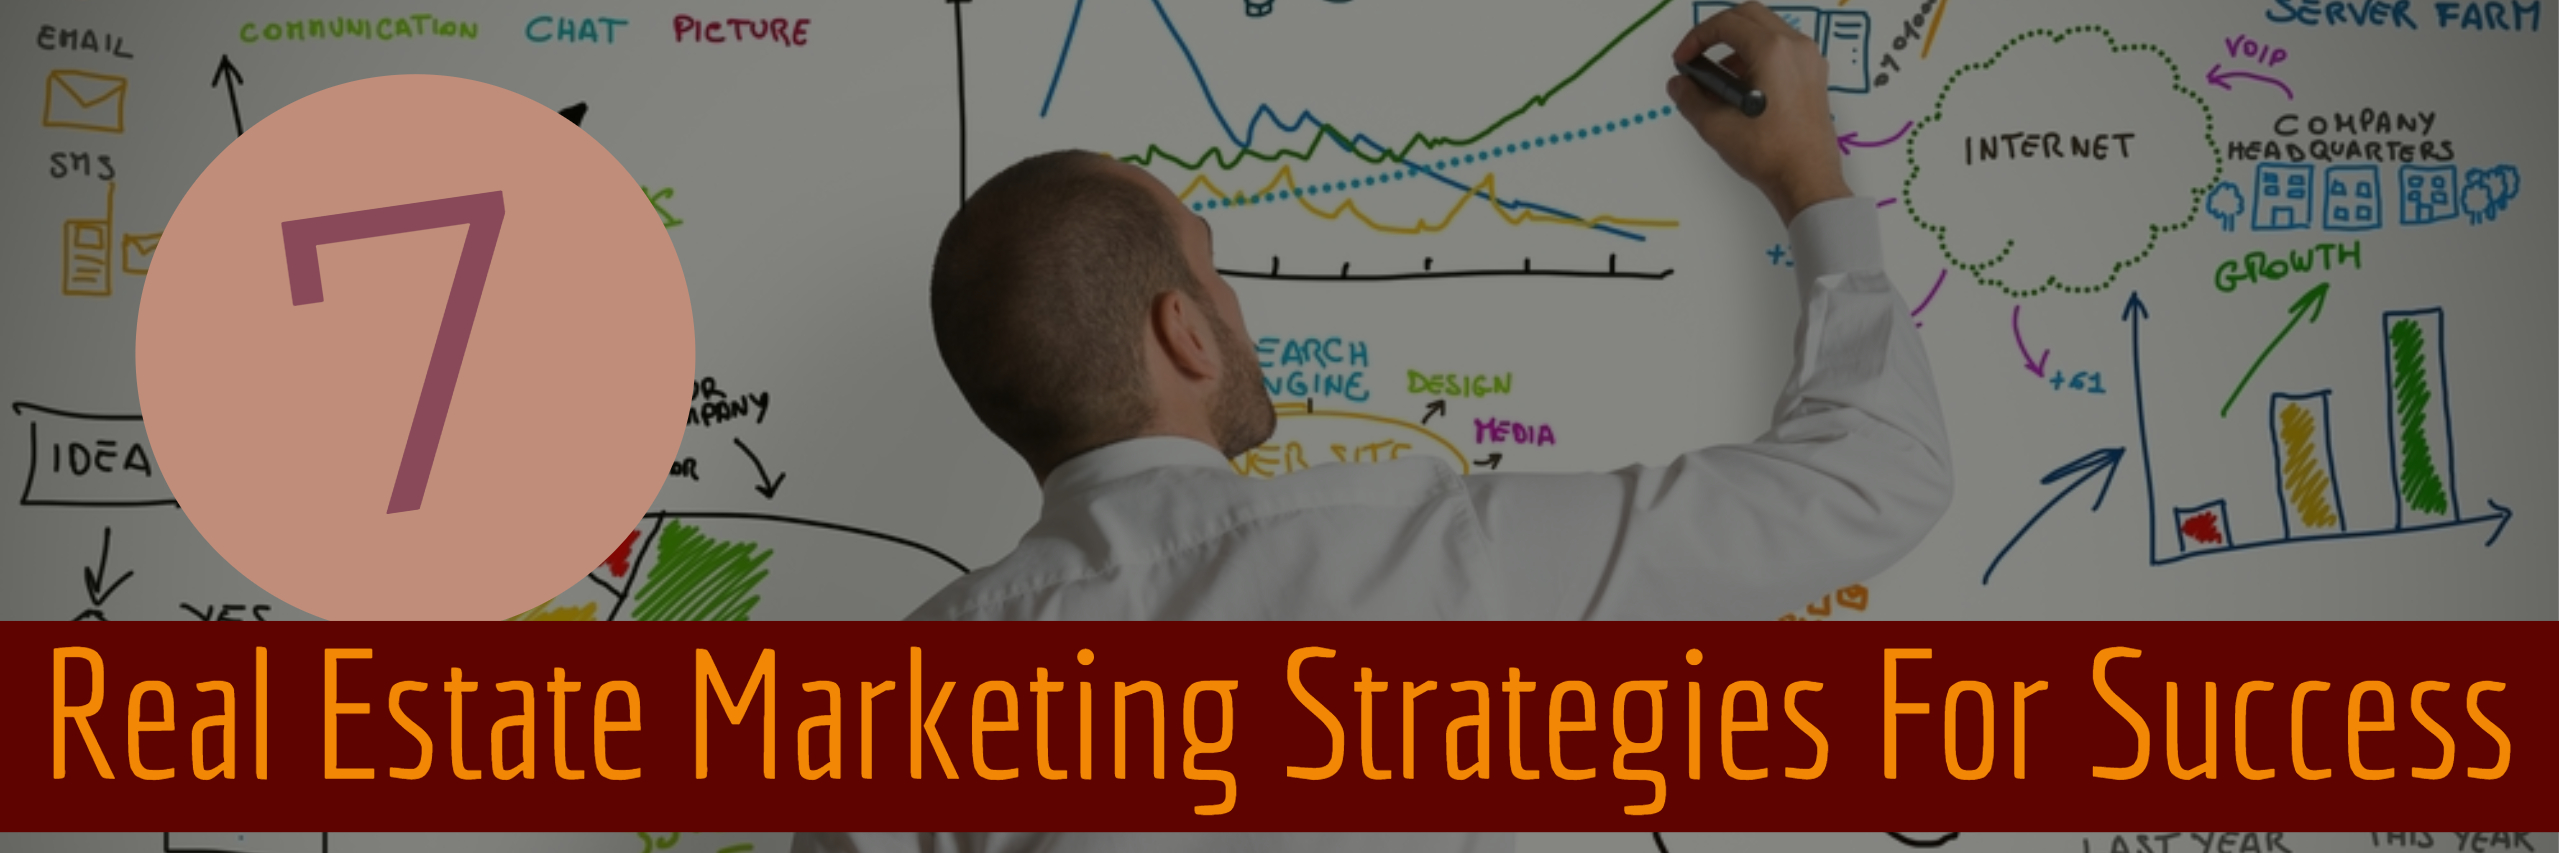 Real Estate Marketing Strategies For Success best real estate agent in Los Angeles best real estate agent in California best real estate agent